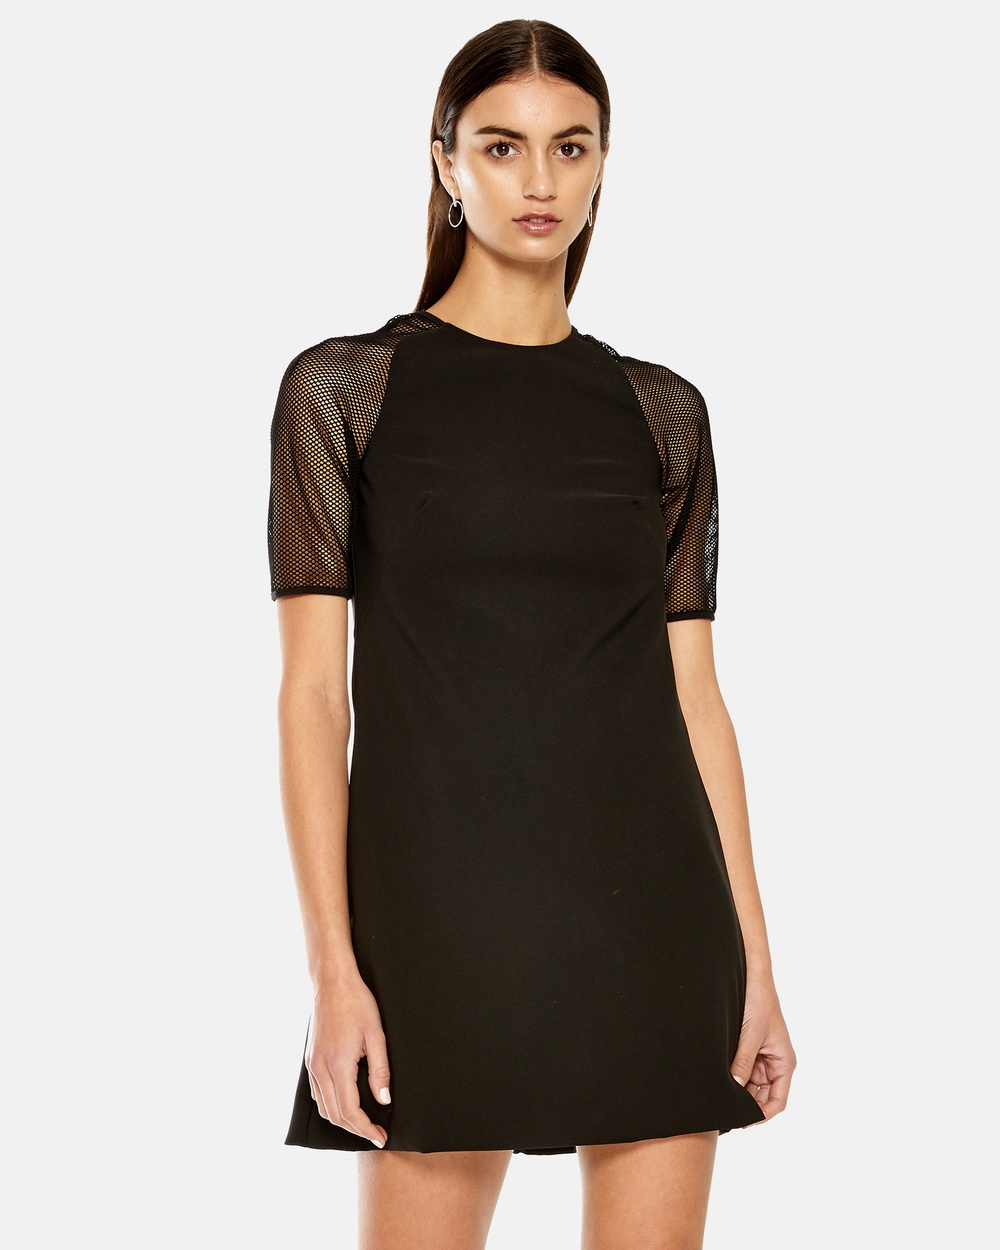 Maniera Black Raglan A-Line Dress